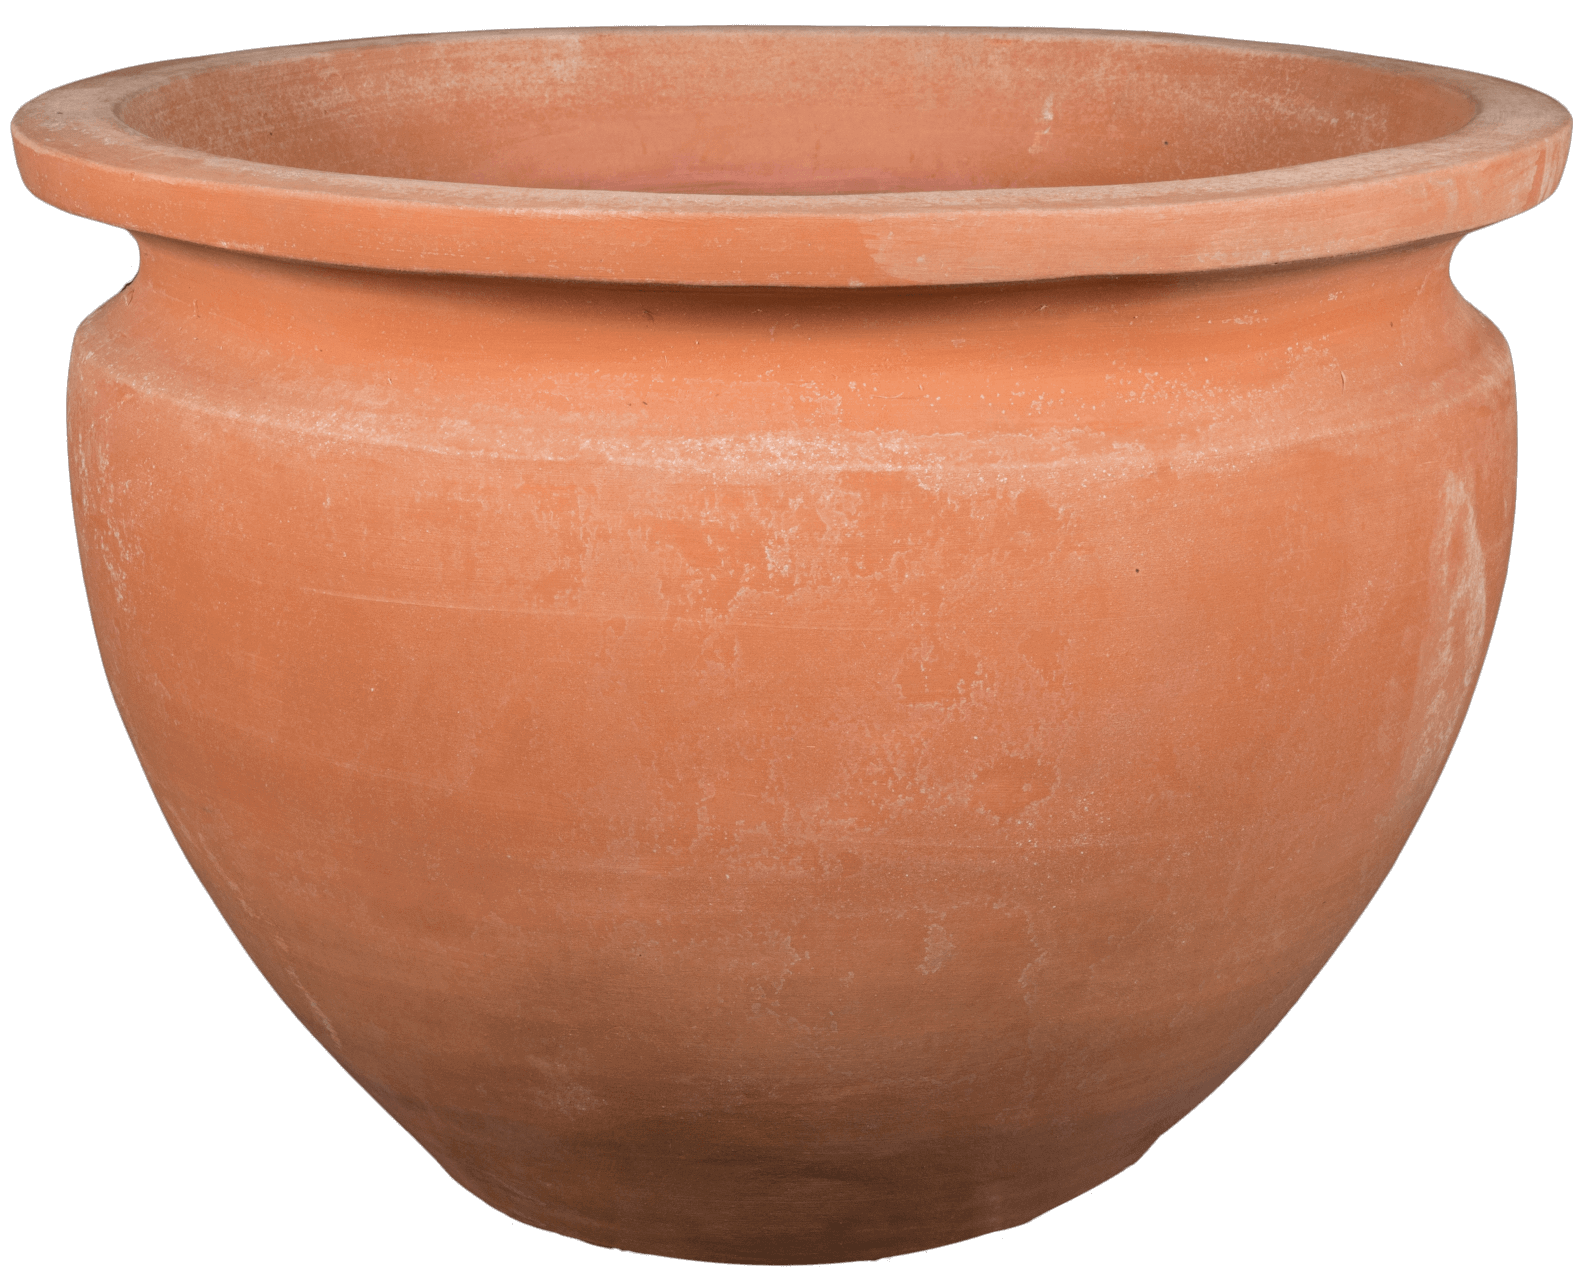 Terracotta Bowls From Tuscan Imports Are Handmade In